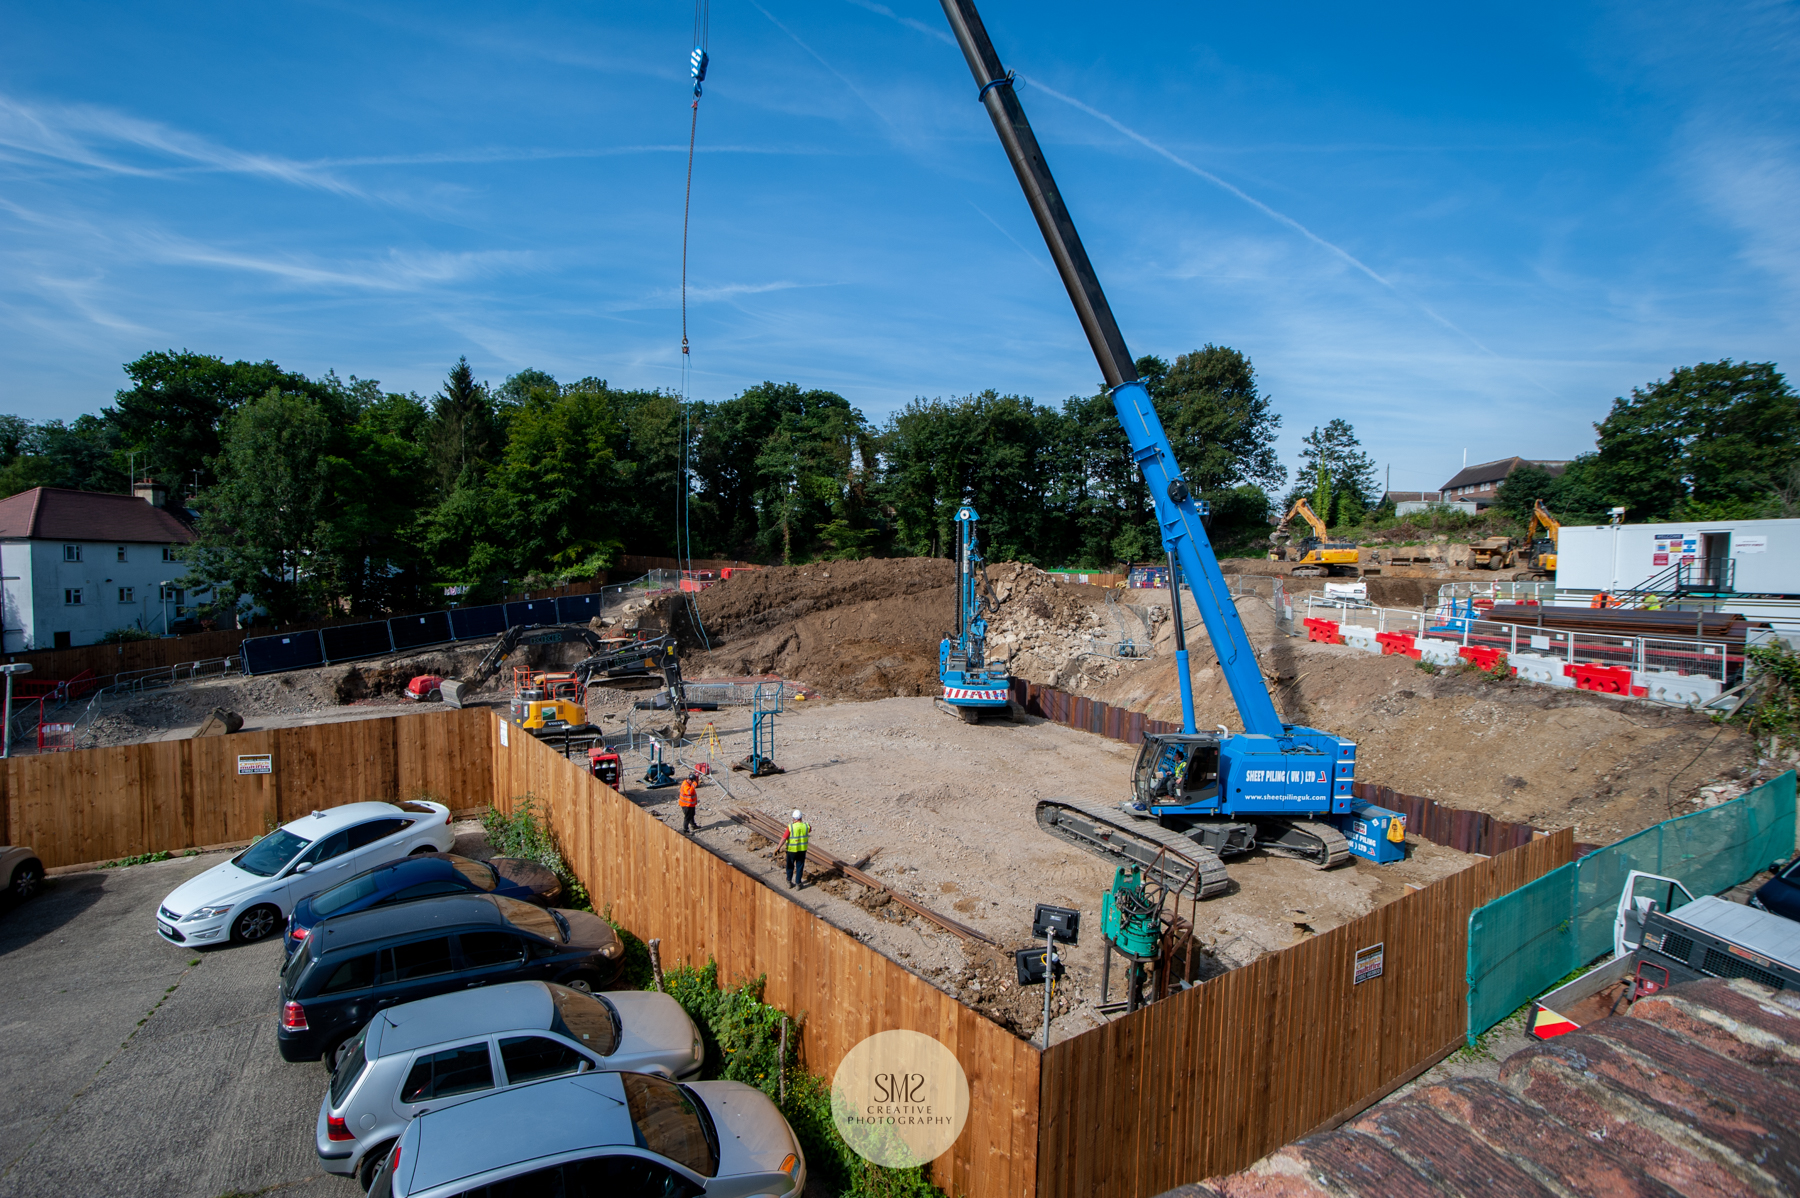 The sheet piling is taking place for the construction of all 3 Blocks, A, B & C, this photograph was taken on 17 July 2019,